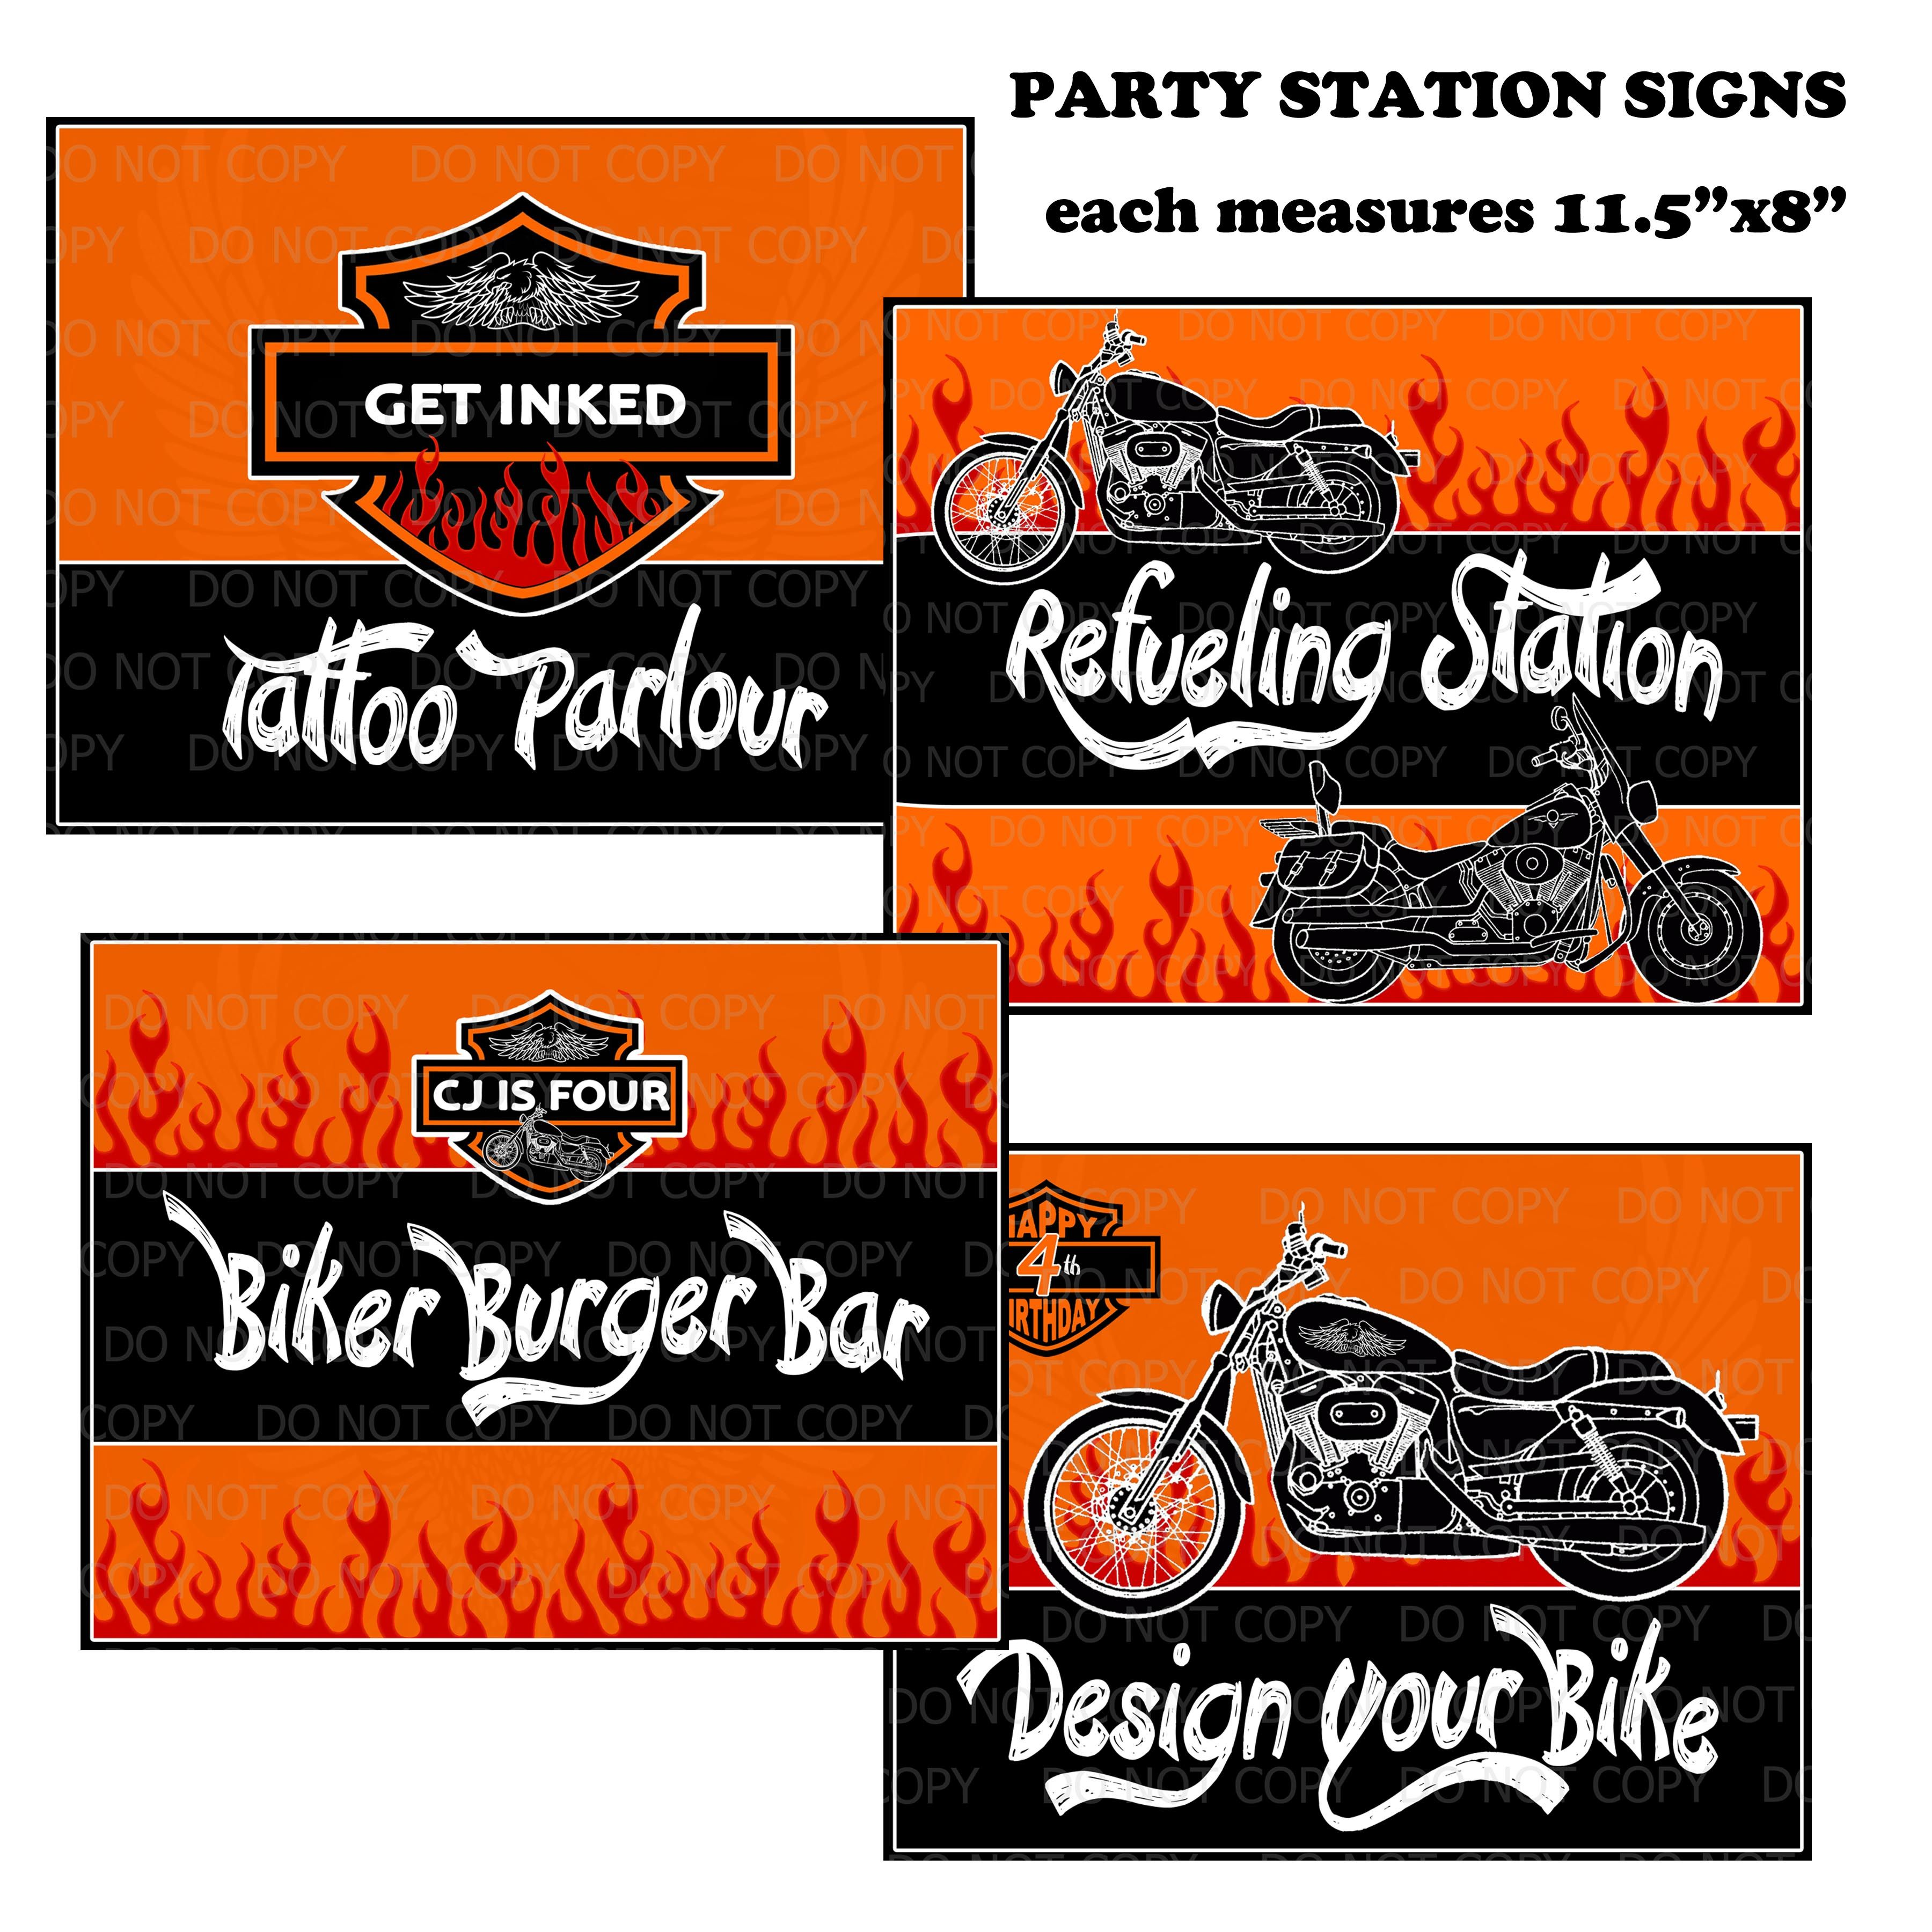 Harley Davidson Birthday Party station signs | Harley party | Pinterest